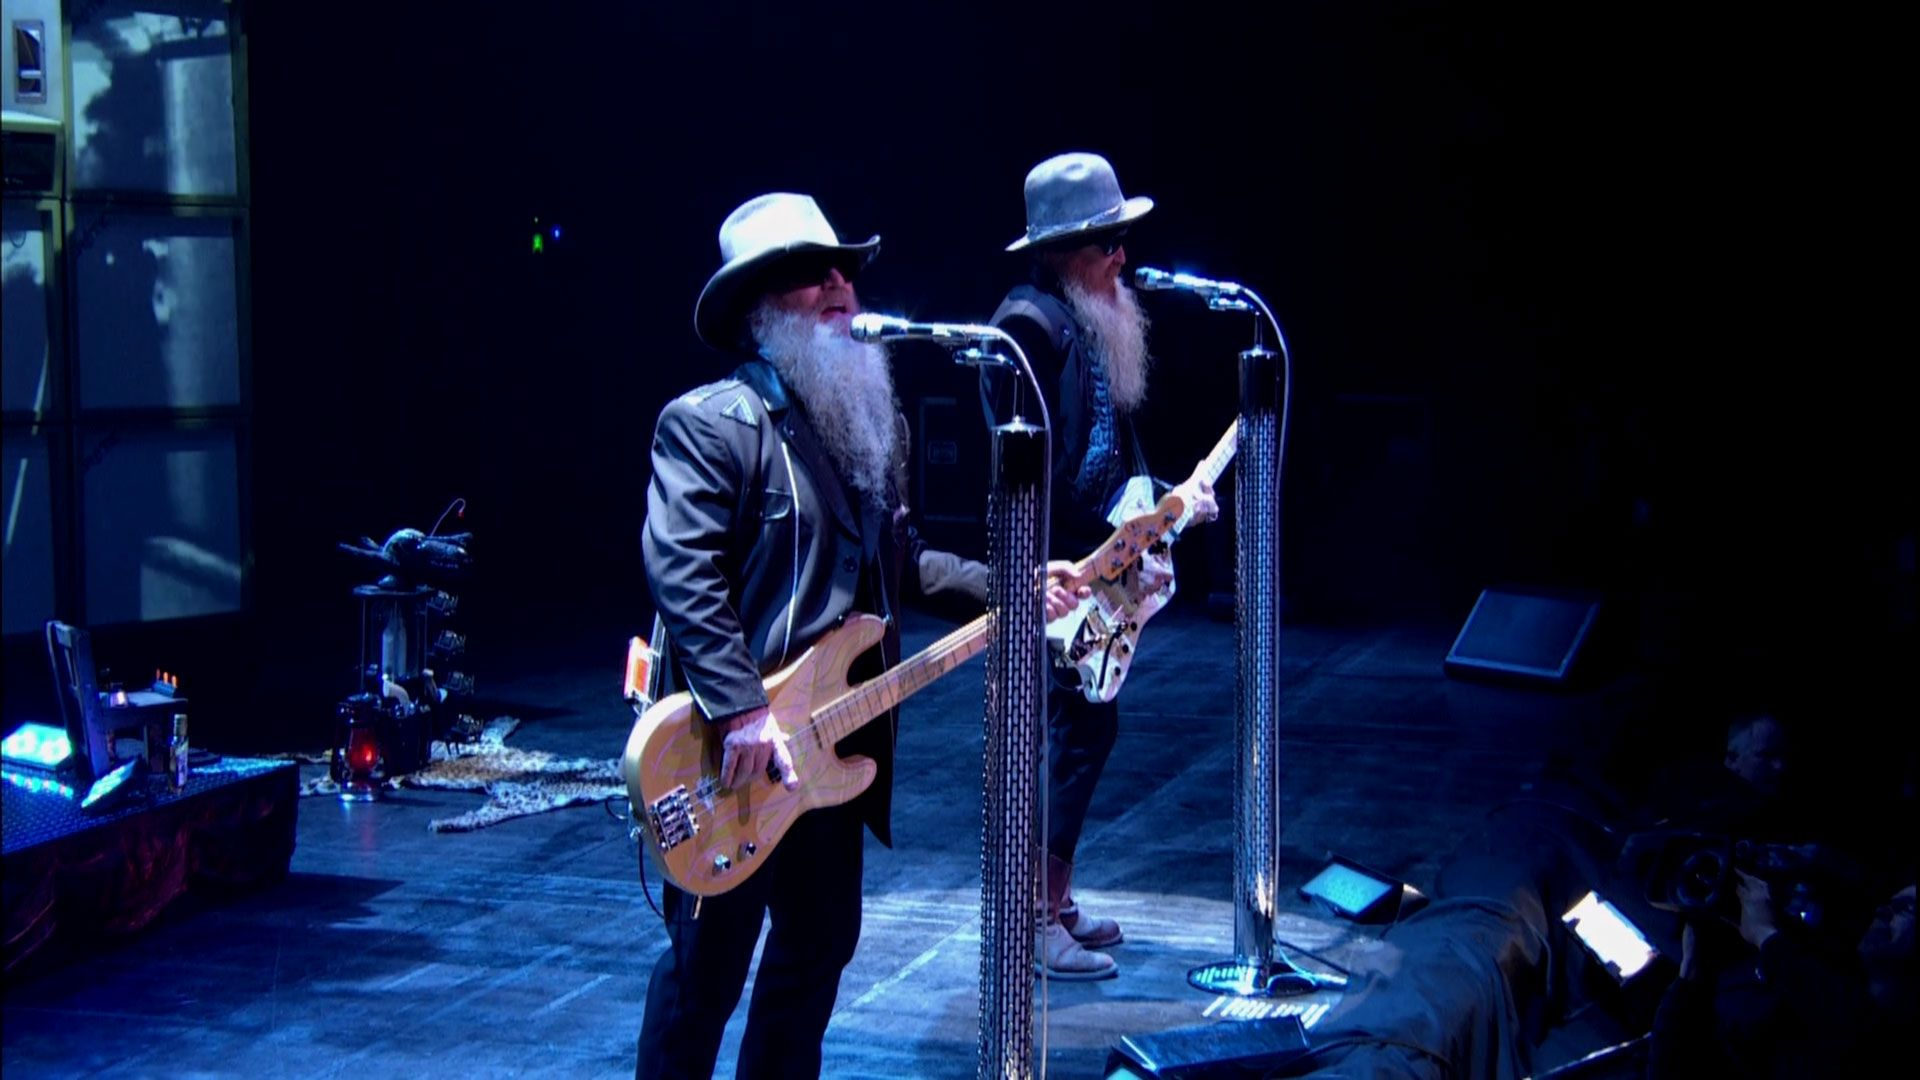 Zz top iphone wallpaper - Zz Top Hd Wallpapers Backgrounds Wallpaper 1920 1440 Zz Top Wallpapers 45 Wallpapers